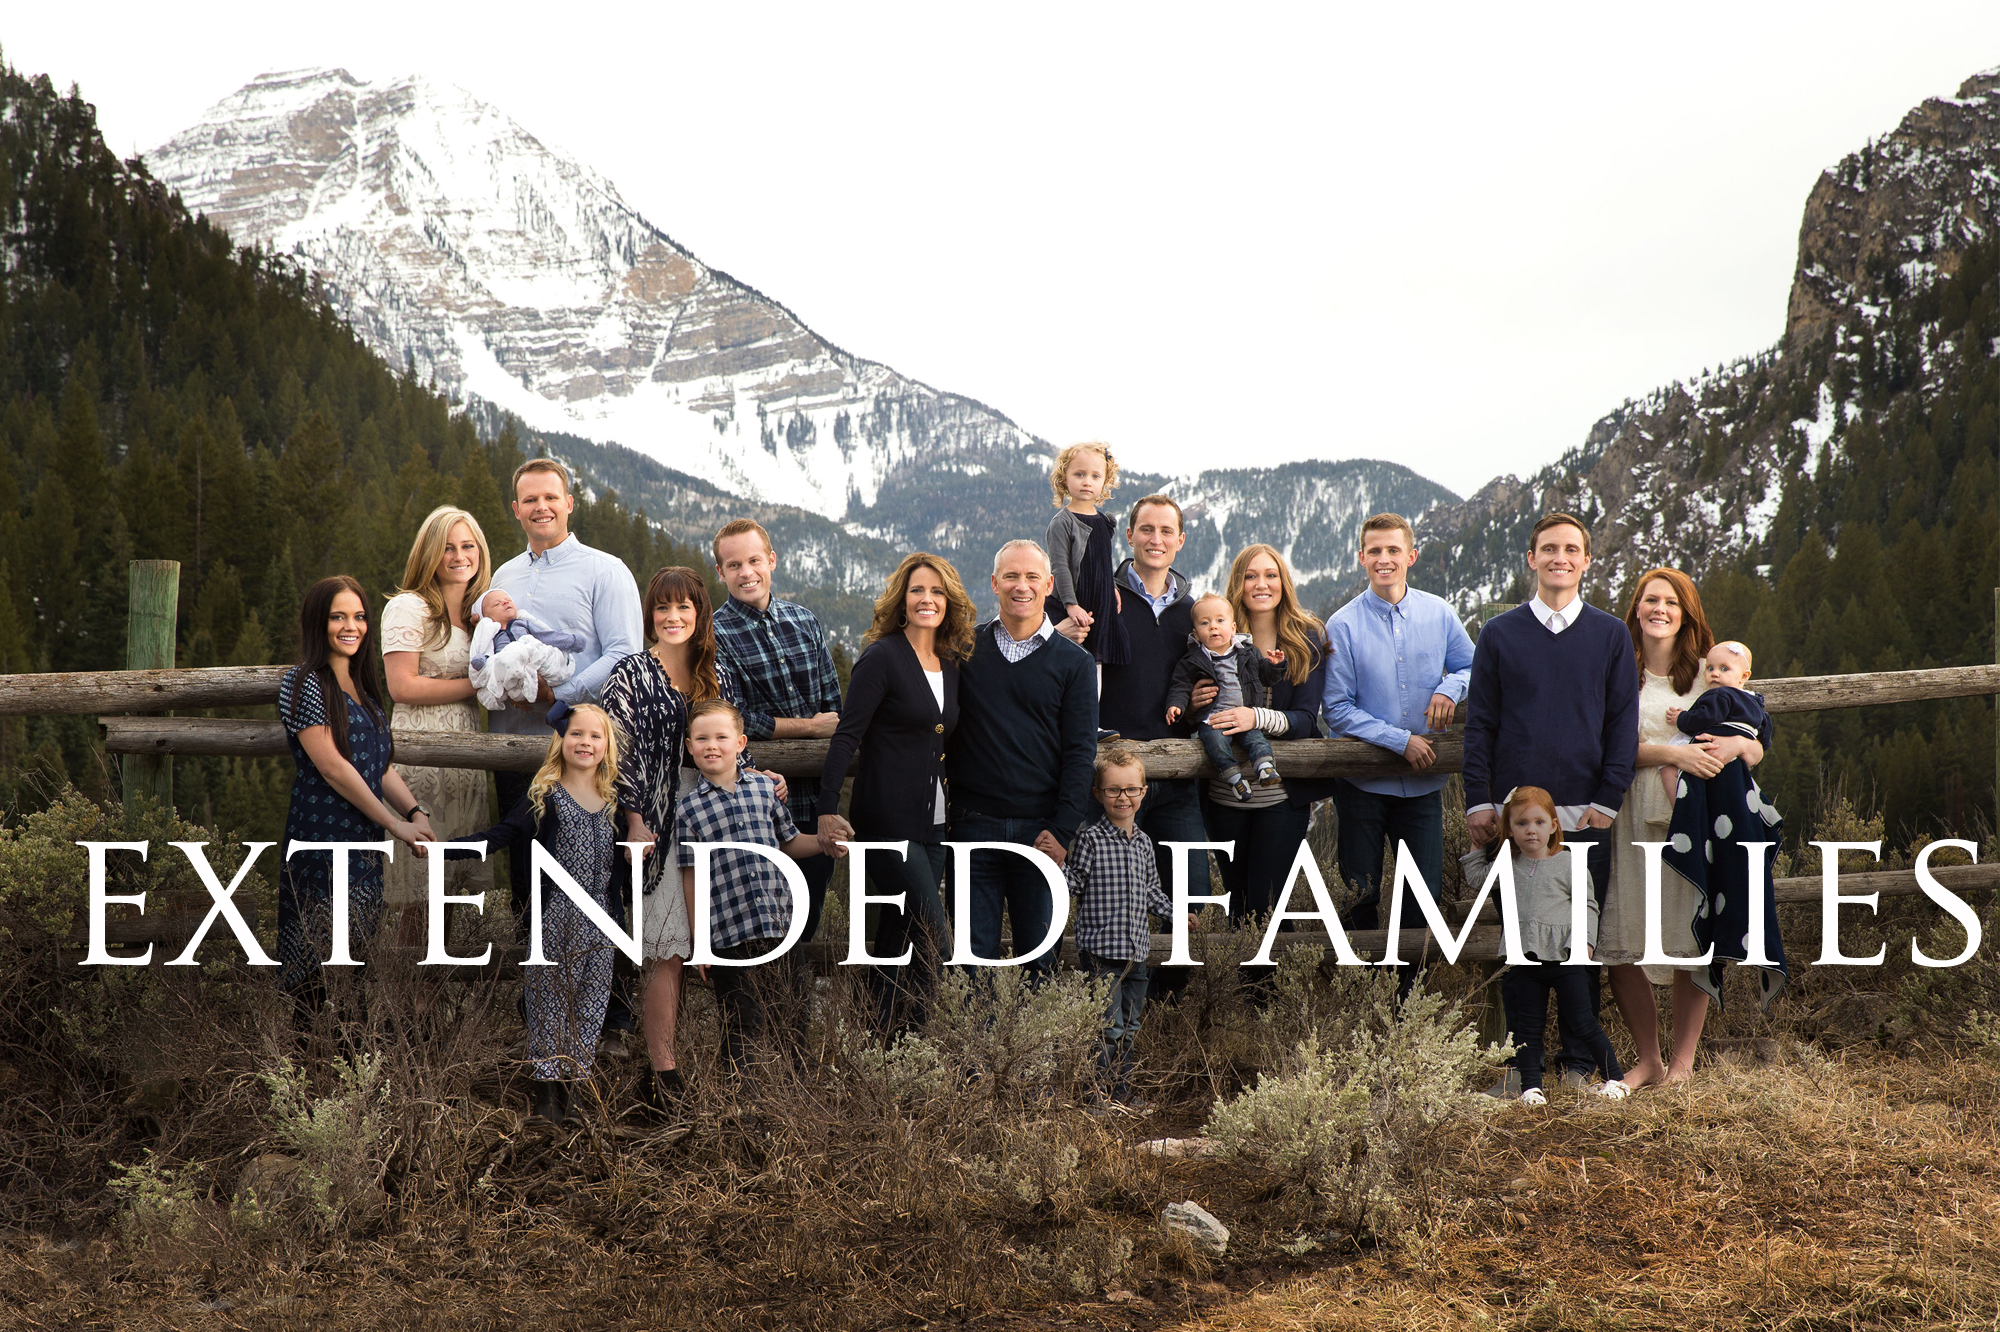 Extended Family Sessions From $295